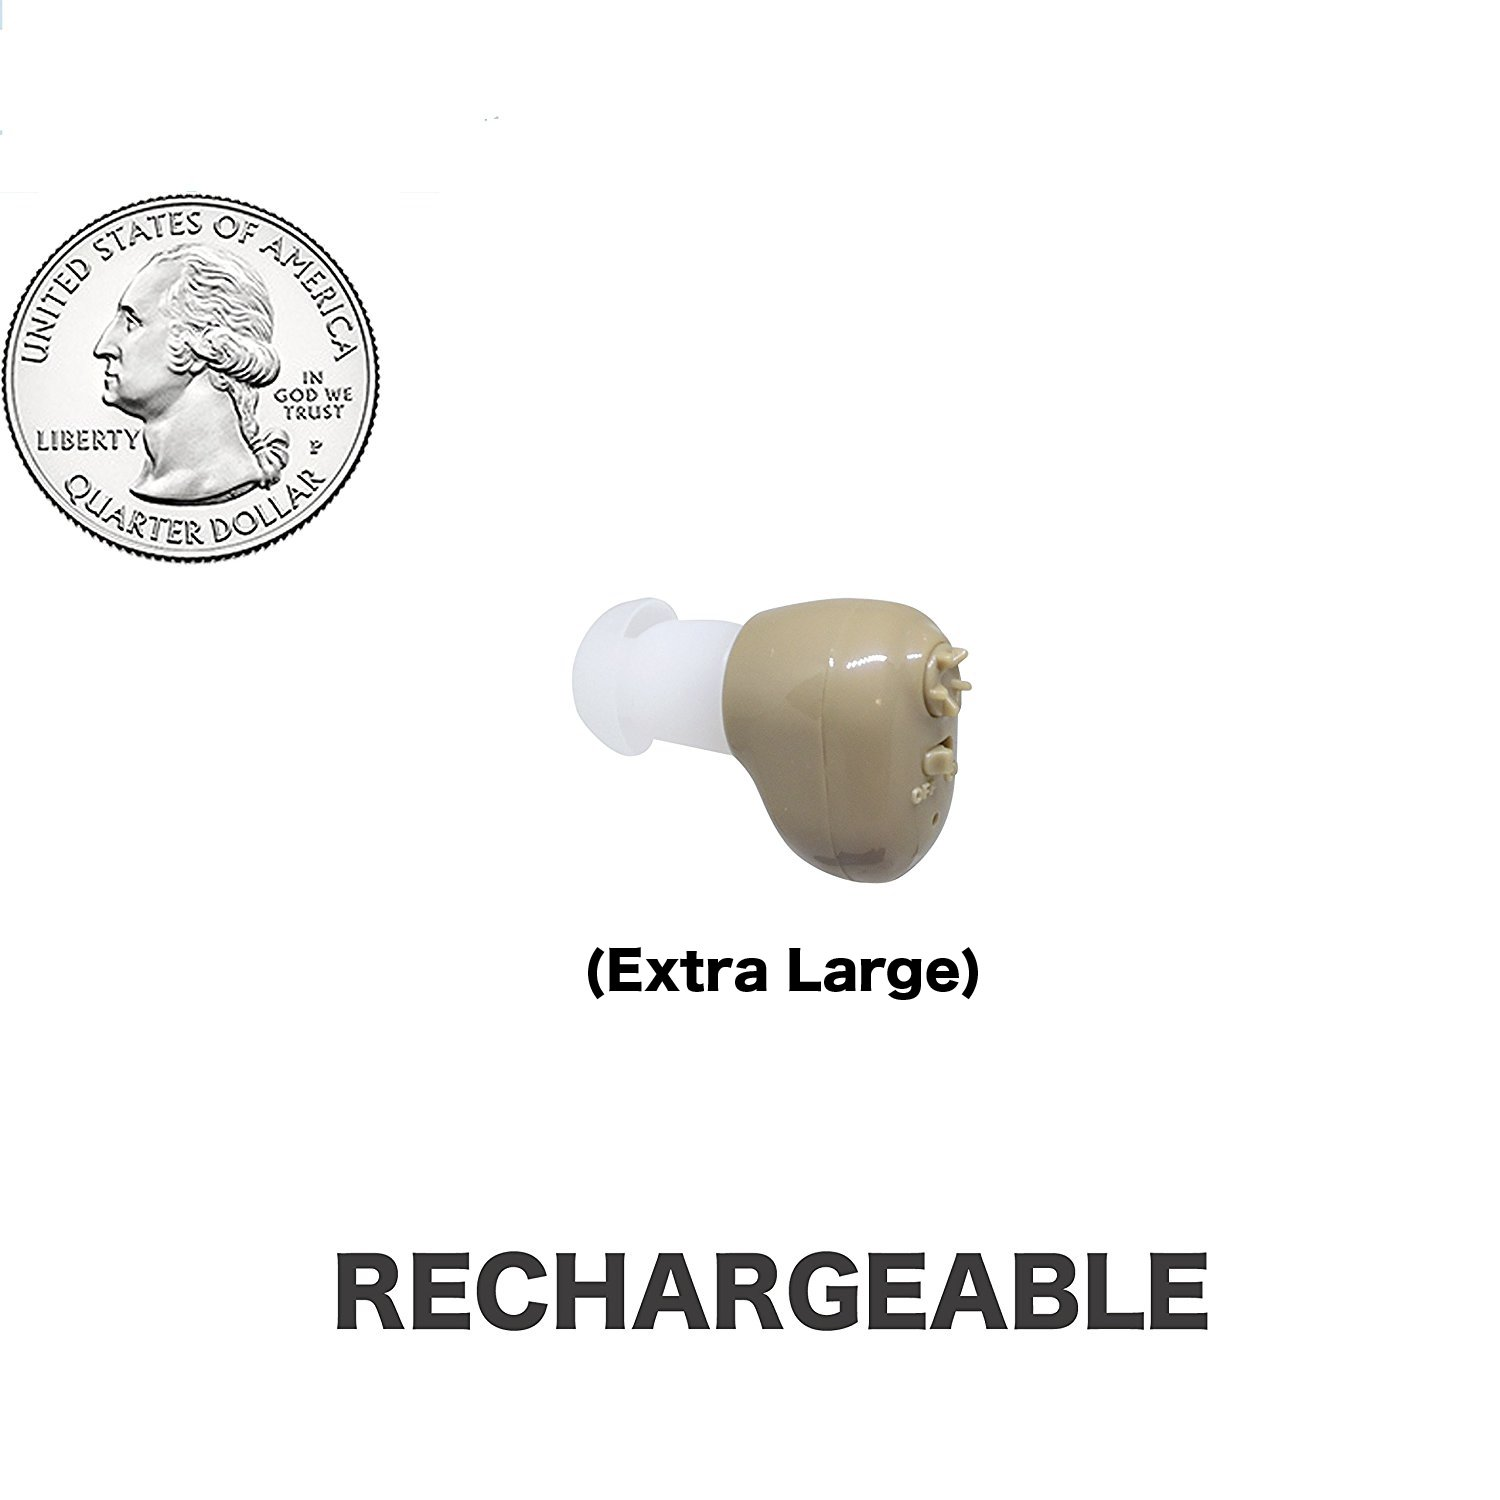 Extra Large Size,Beige Color, In The Canal (ITC), New Digital Hearing Ear Amplifier Kit By EASYUSLIFE, Rechargeable and Interchangeable, Adjustable Volume Control, Suitable For Men and Women